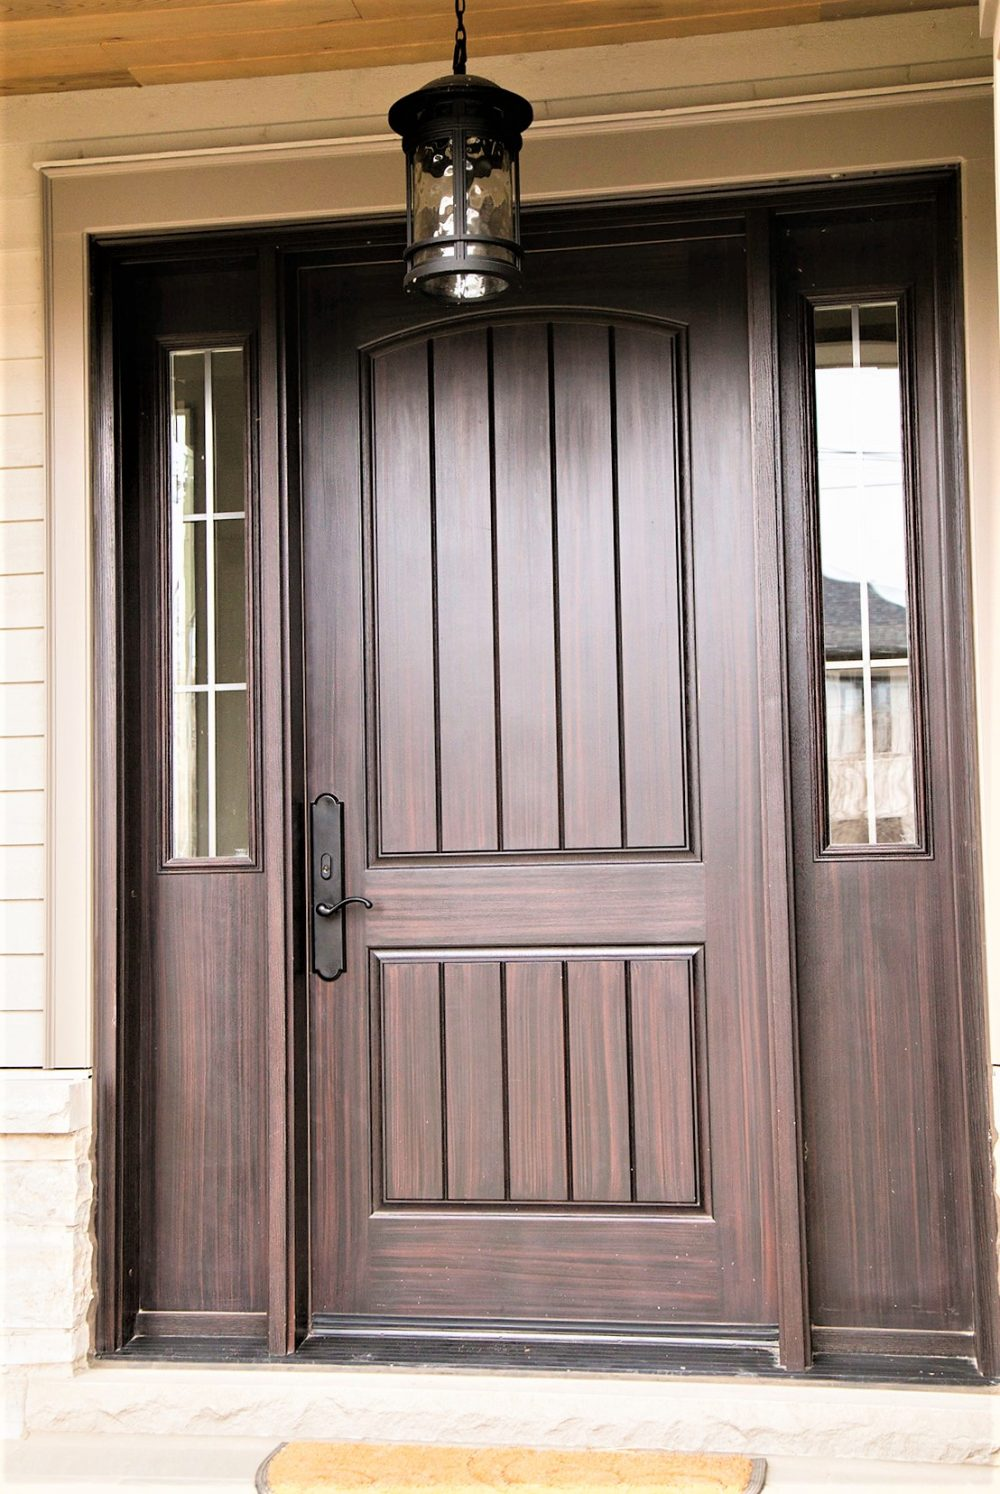 fiberglass door system plank style with custom sidelights